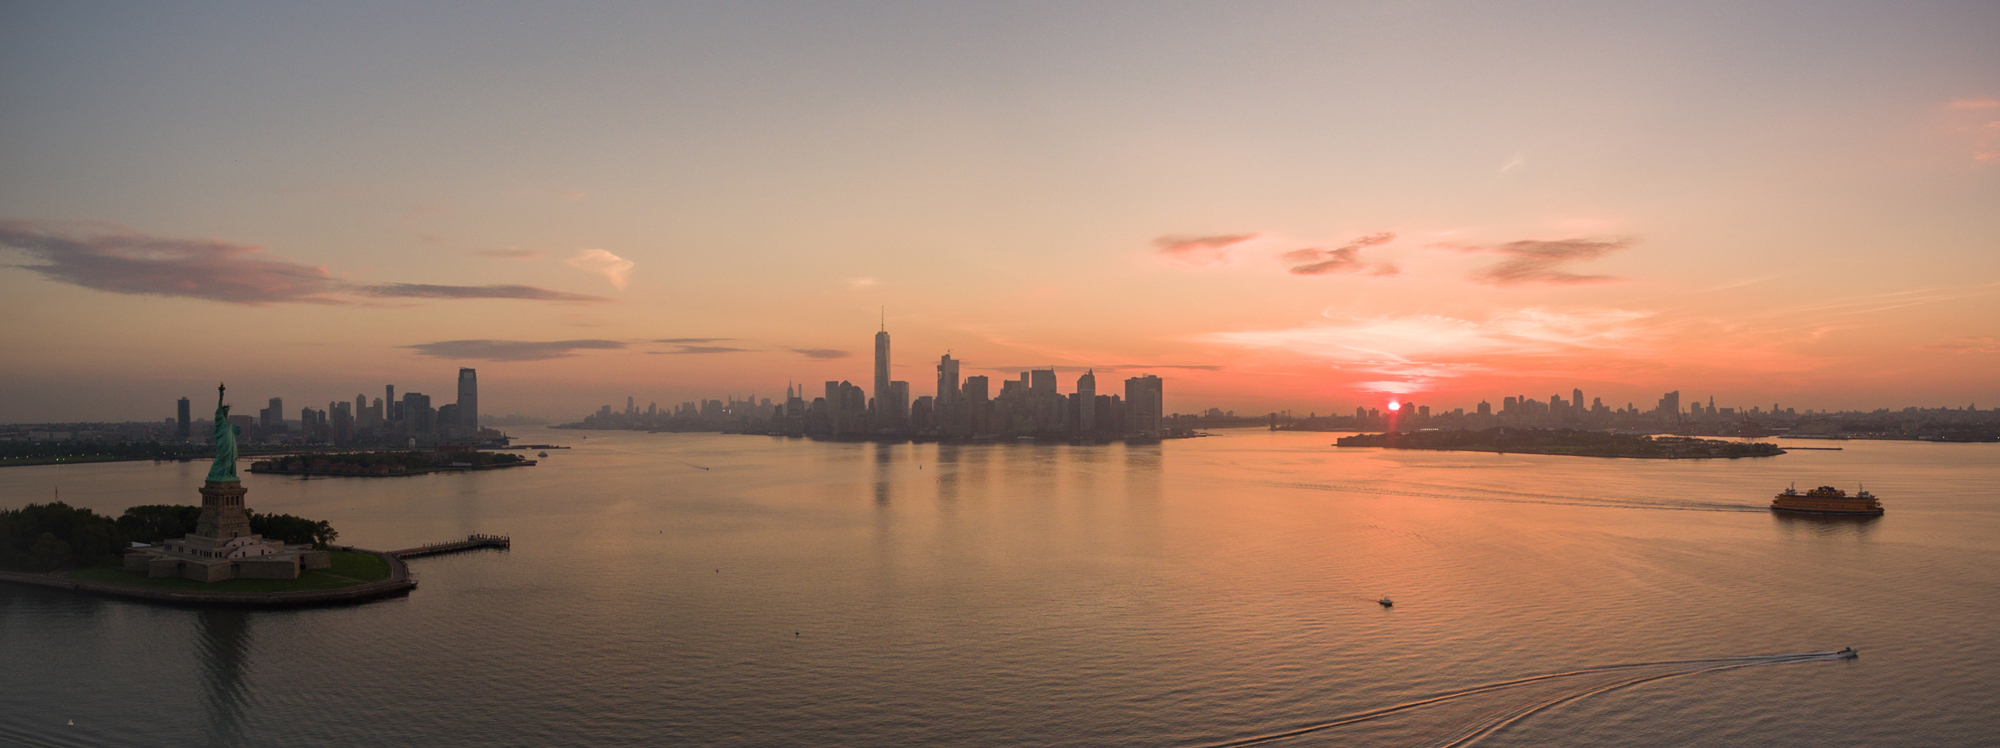 NYC skyline today, Image from Flickr user Eric